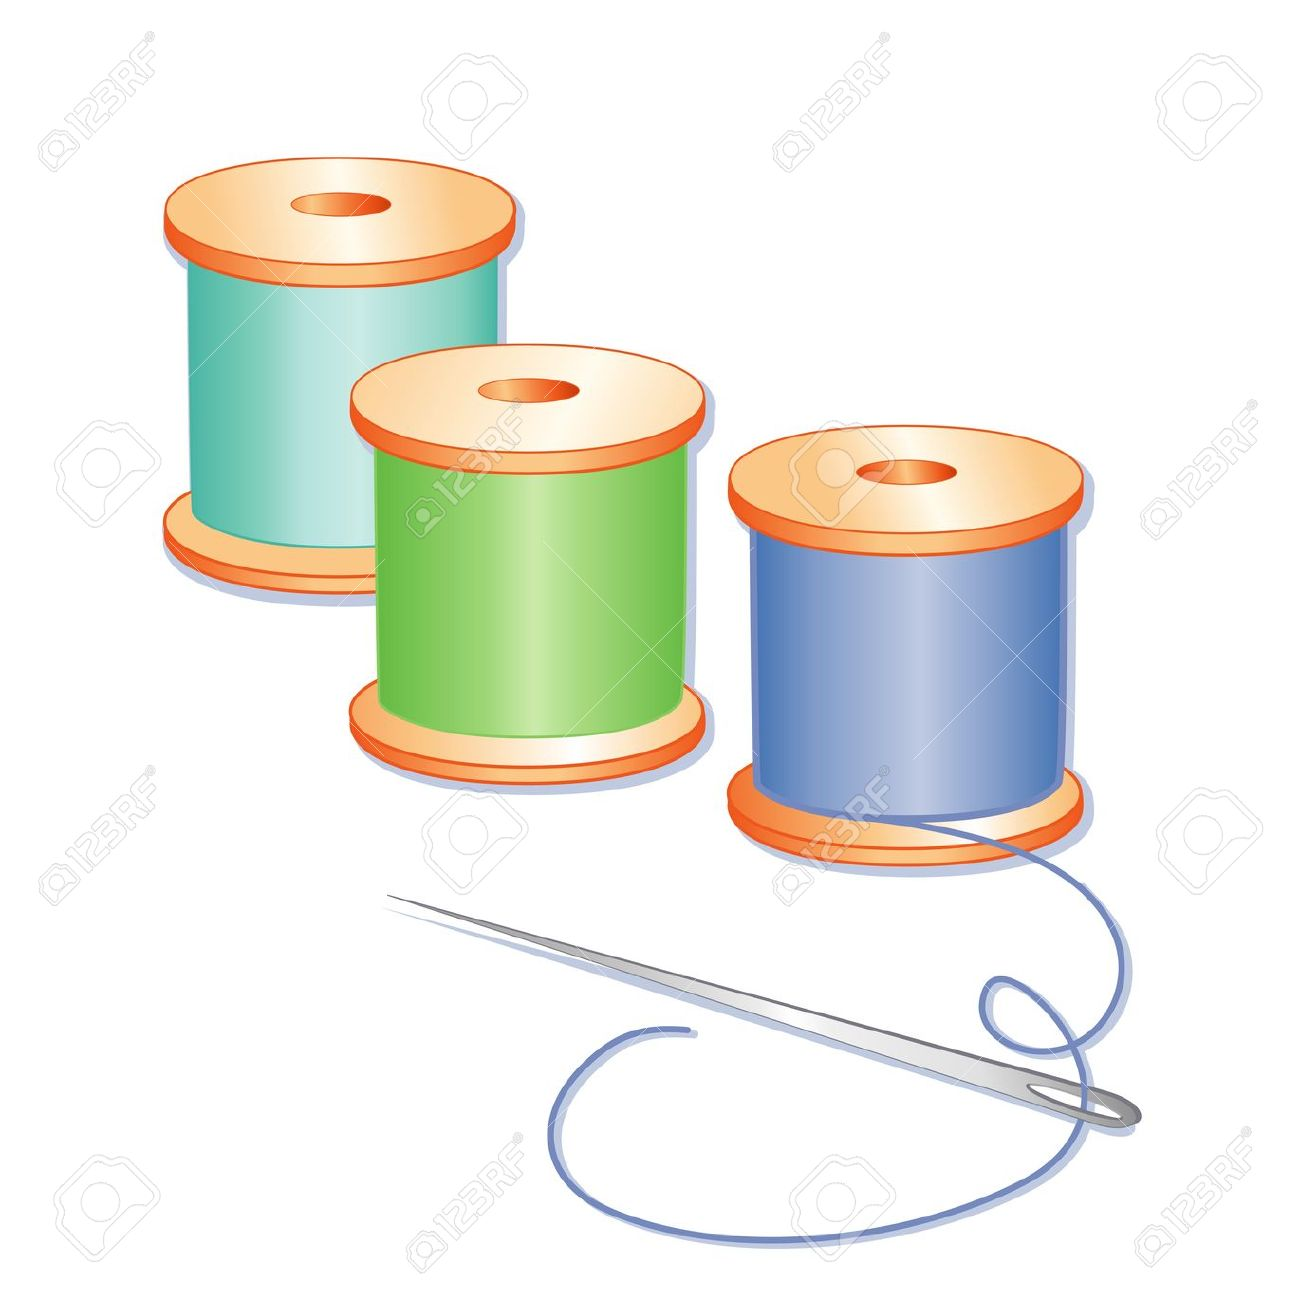 Sewing Needle, Spools Of Blue, Green And Aqua Thread, White.